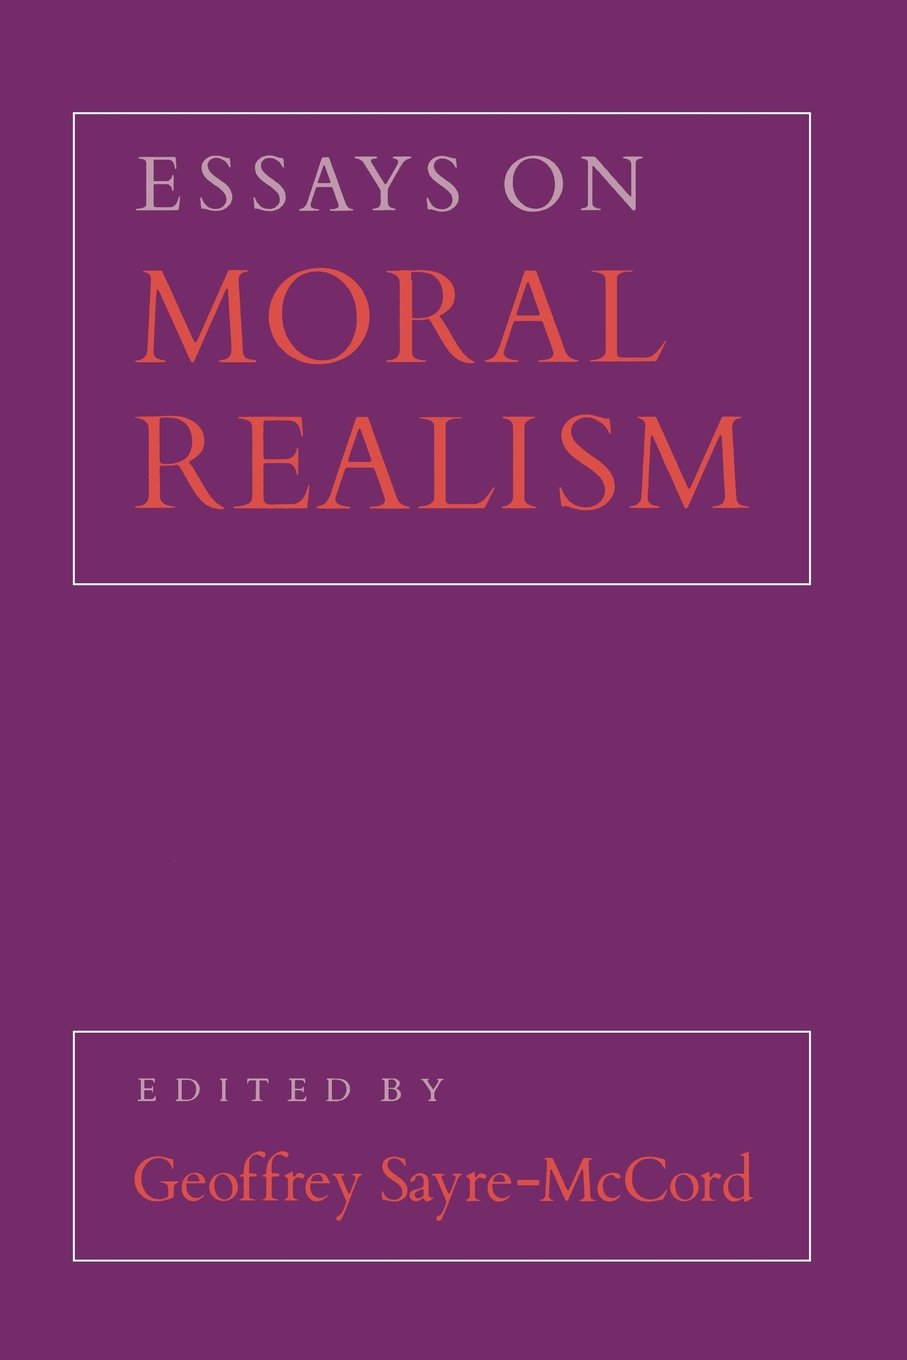 essays on moral realism cornell paperbacks amazon co uk essays on moral realism cornell paperbacks amazon co uk geoffrey sayre mccord 9780801495410 books